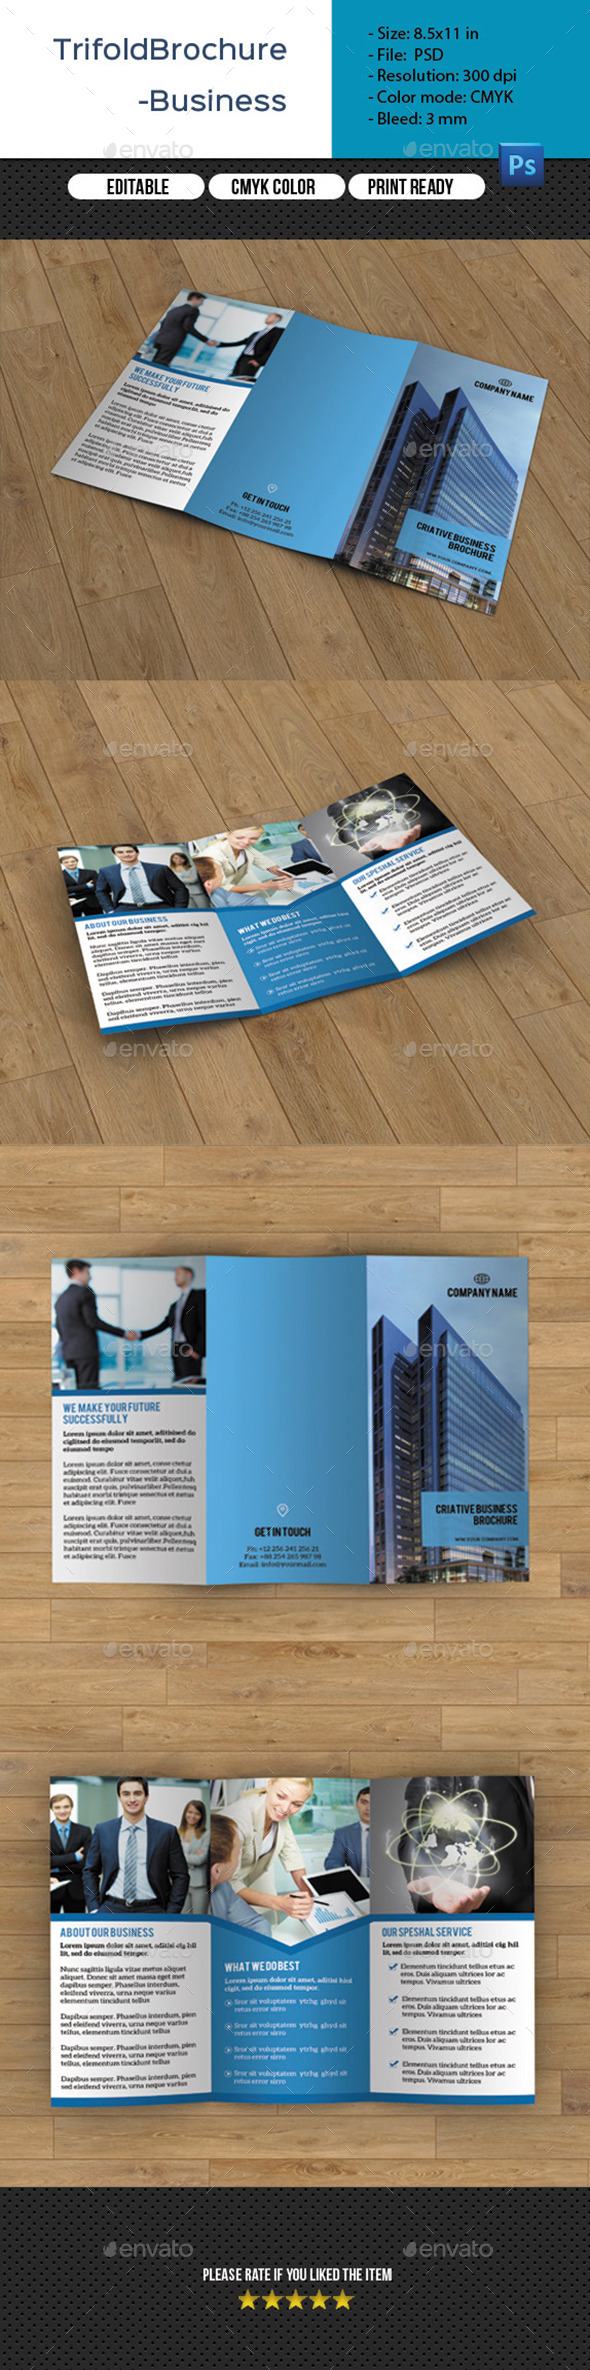 Corporate Trifold Brochure-V233